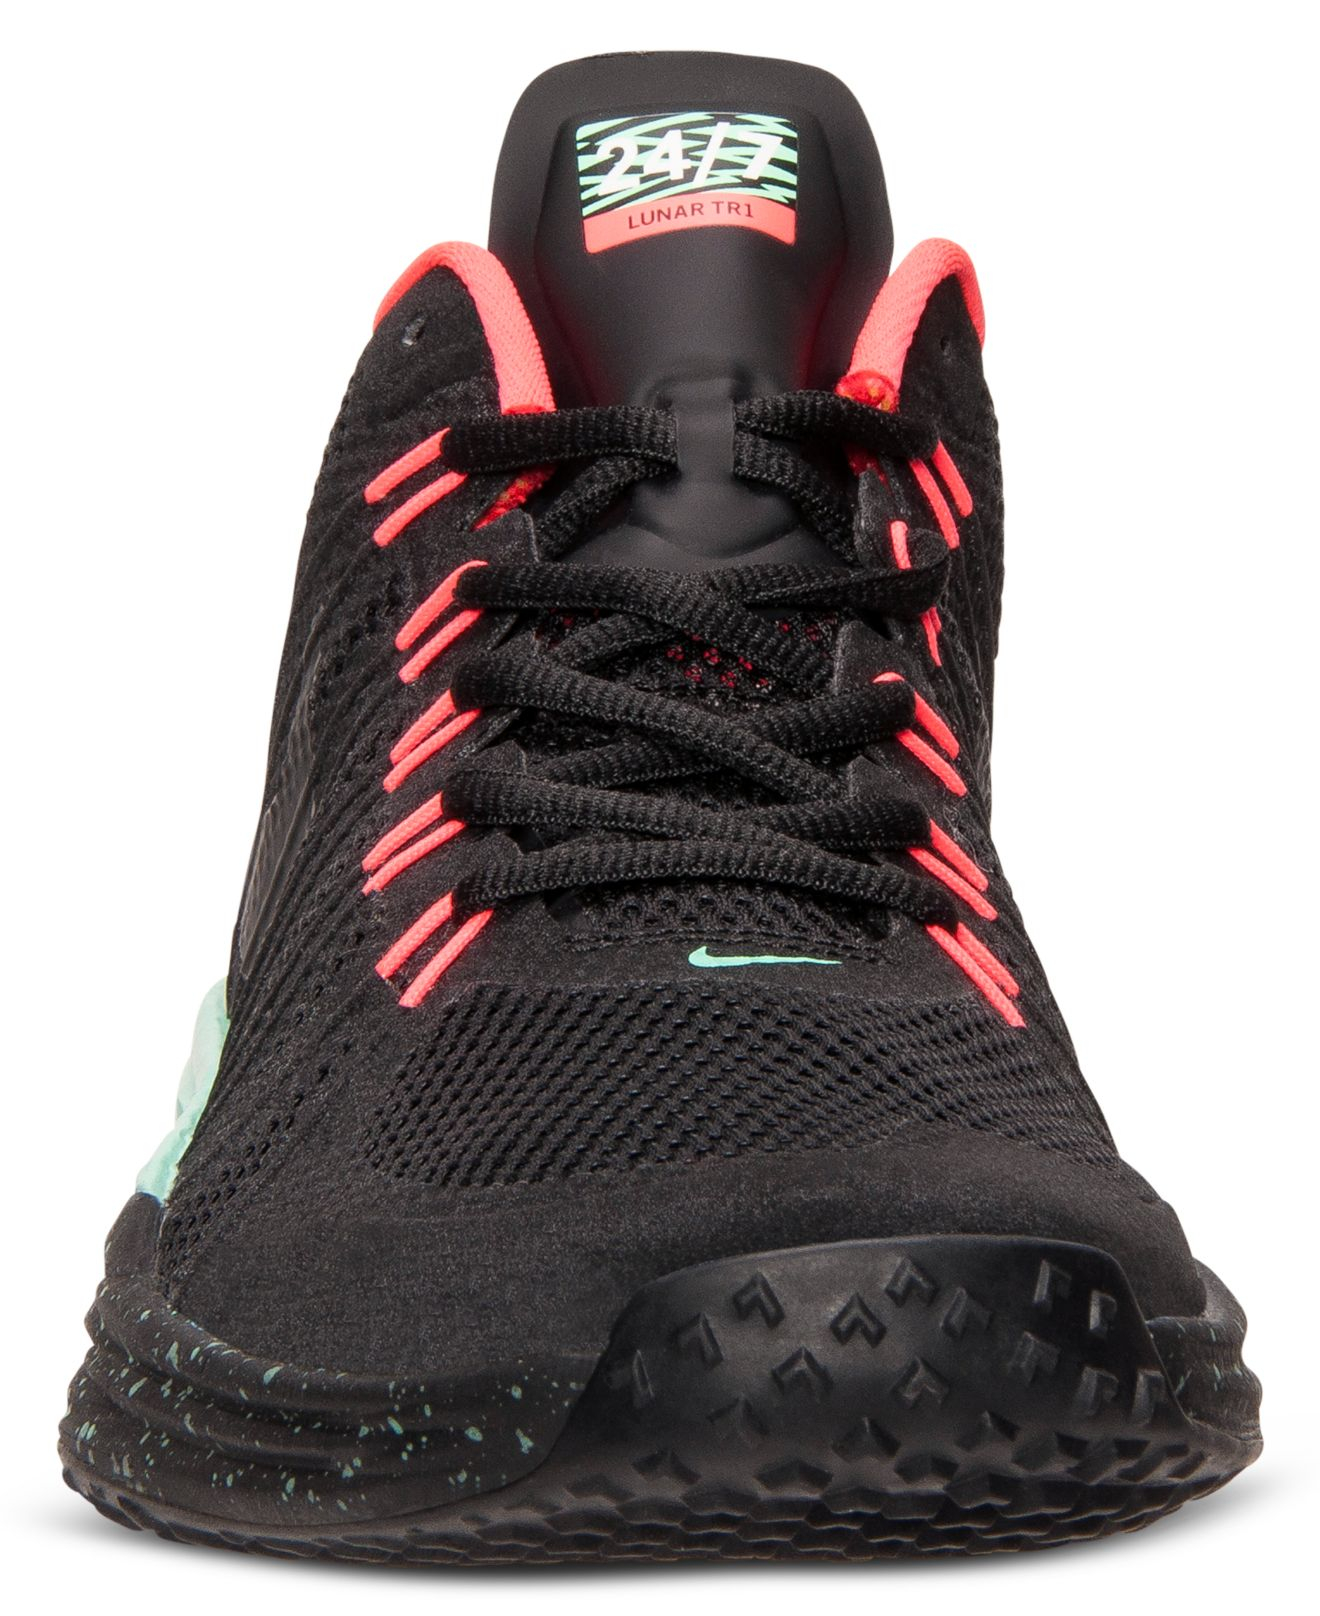 new style ff435 262dc ... Black Green Shoes Glow FMQUX03789 Shop For The Best Mens Nike Lunar TR1  NRG Running Shoes Special Sales Lyst - Nike Men S Lunar Tr1 Nrg Training ...